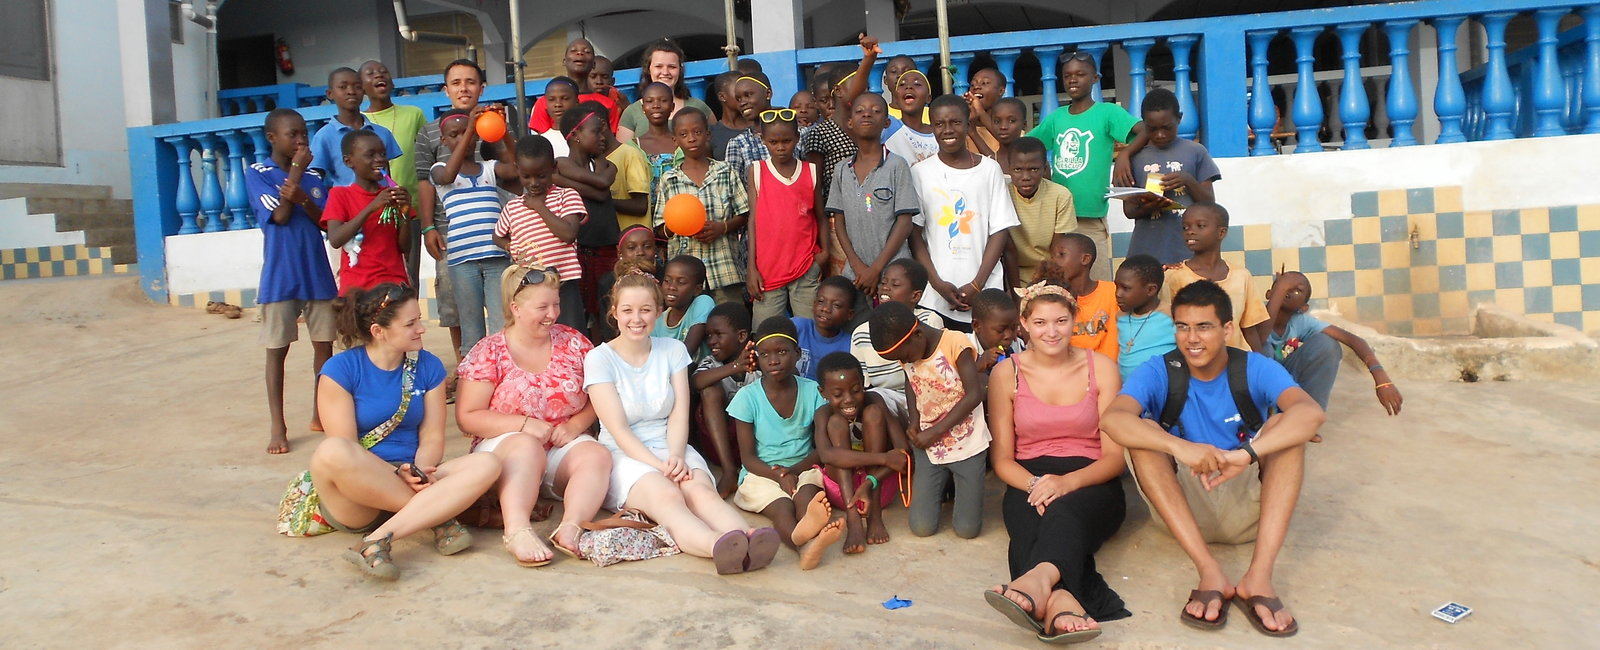 Katy Perkins - Nursing Electives in Ghana Takoradi